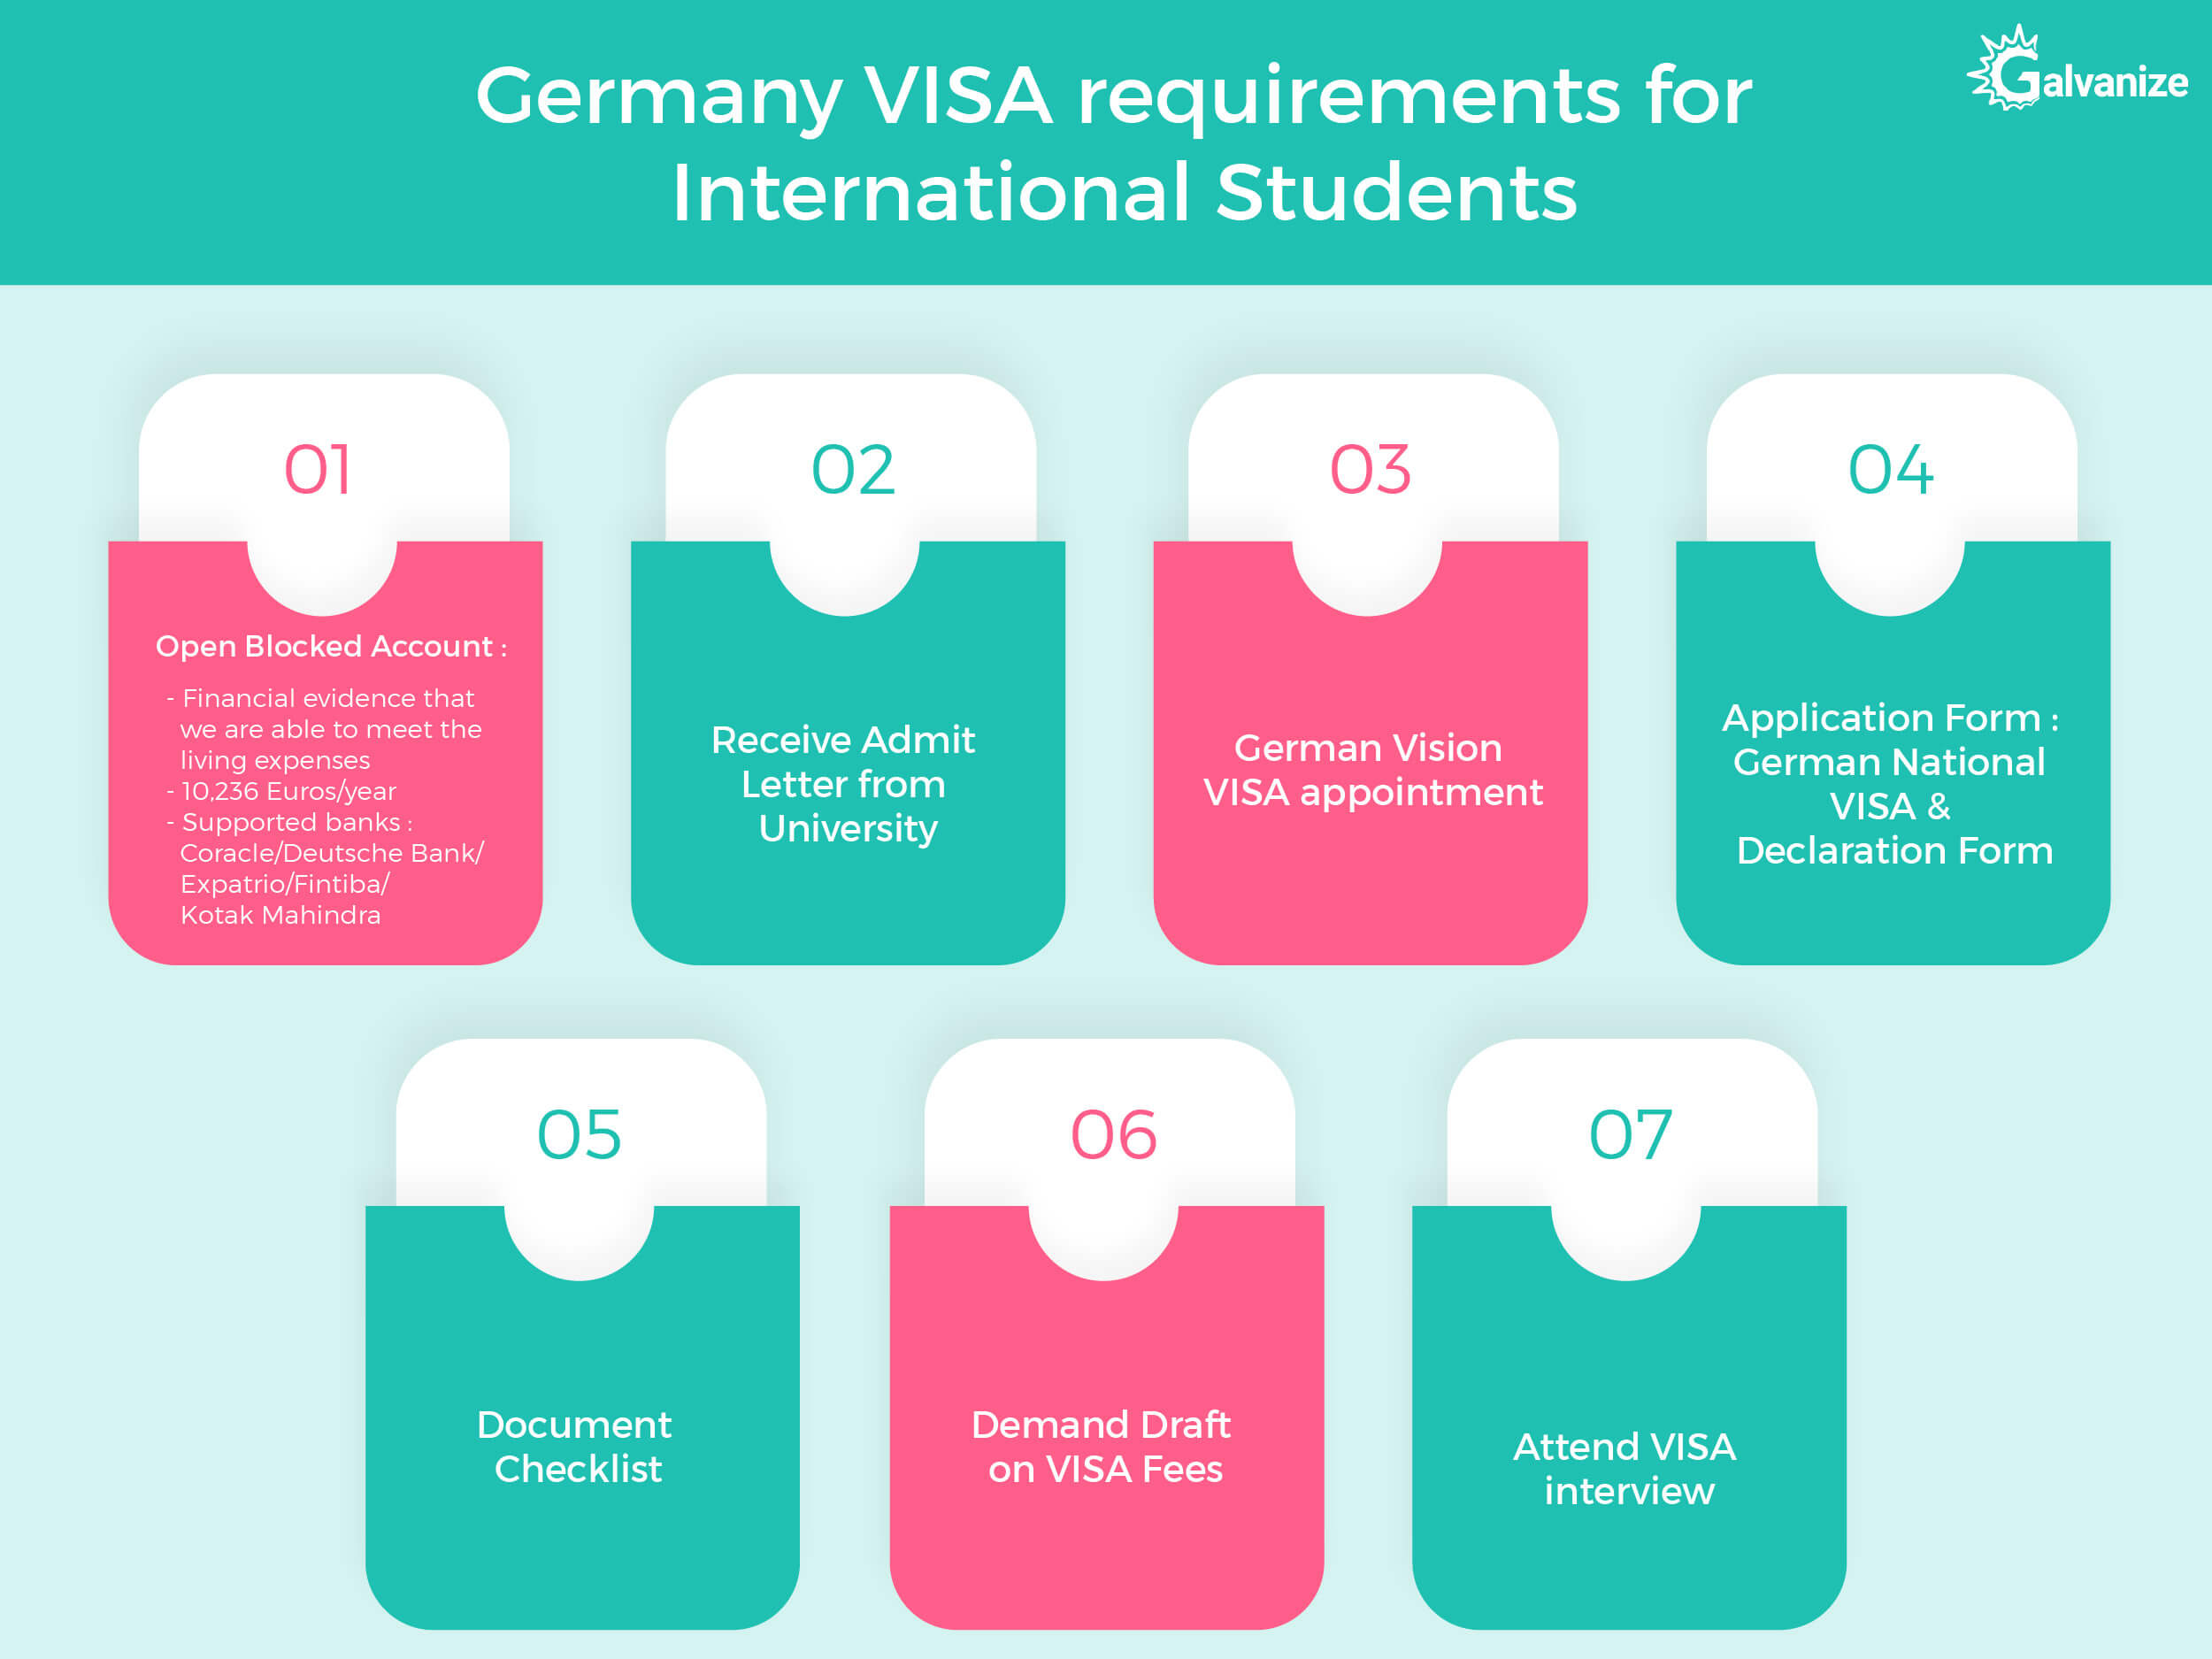 GERMANY VISA Requirements for international students